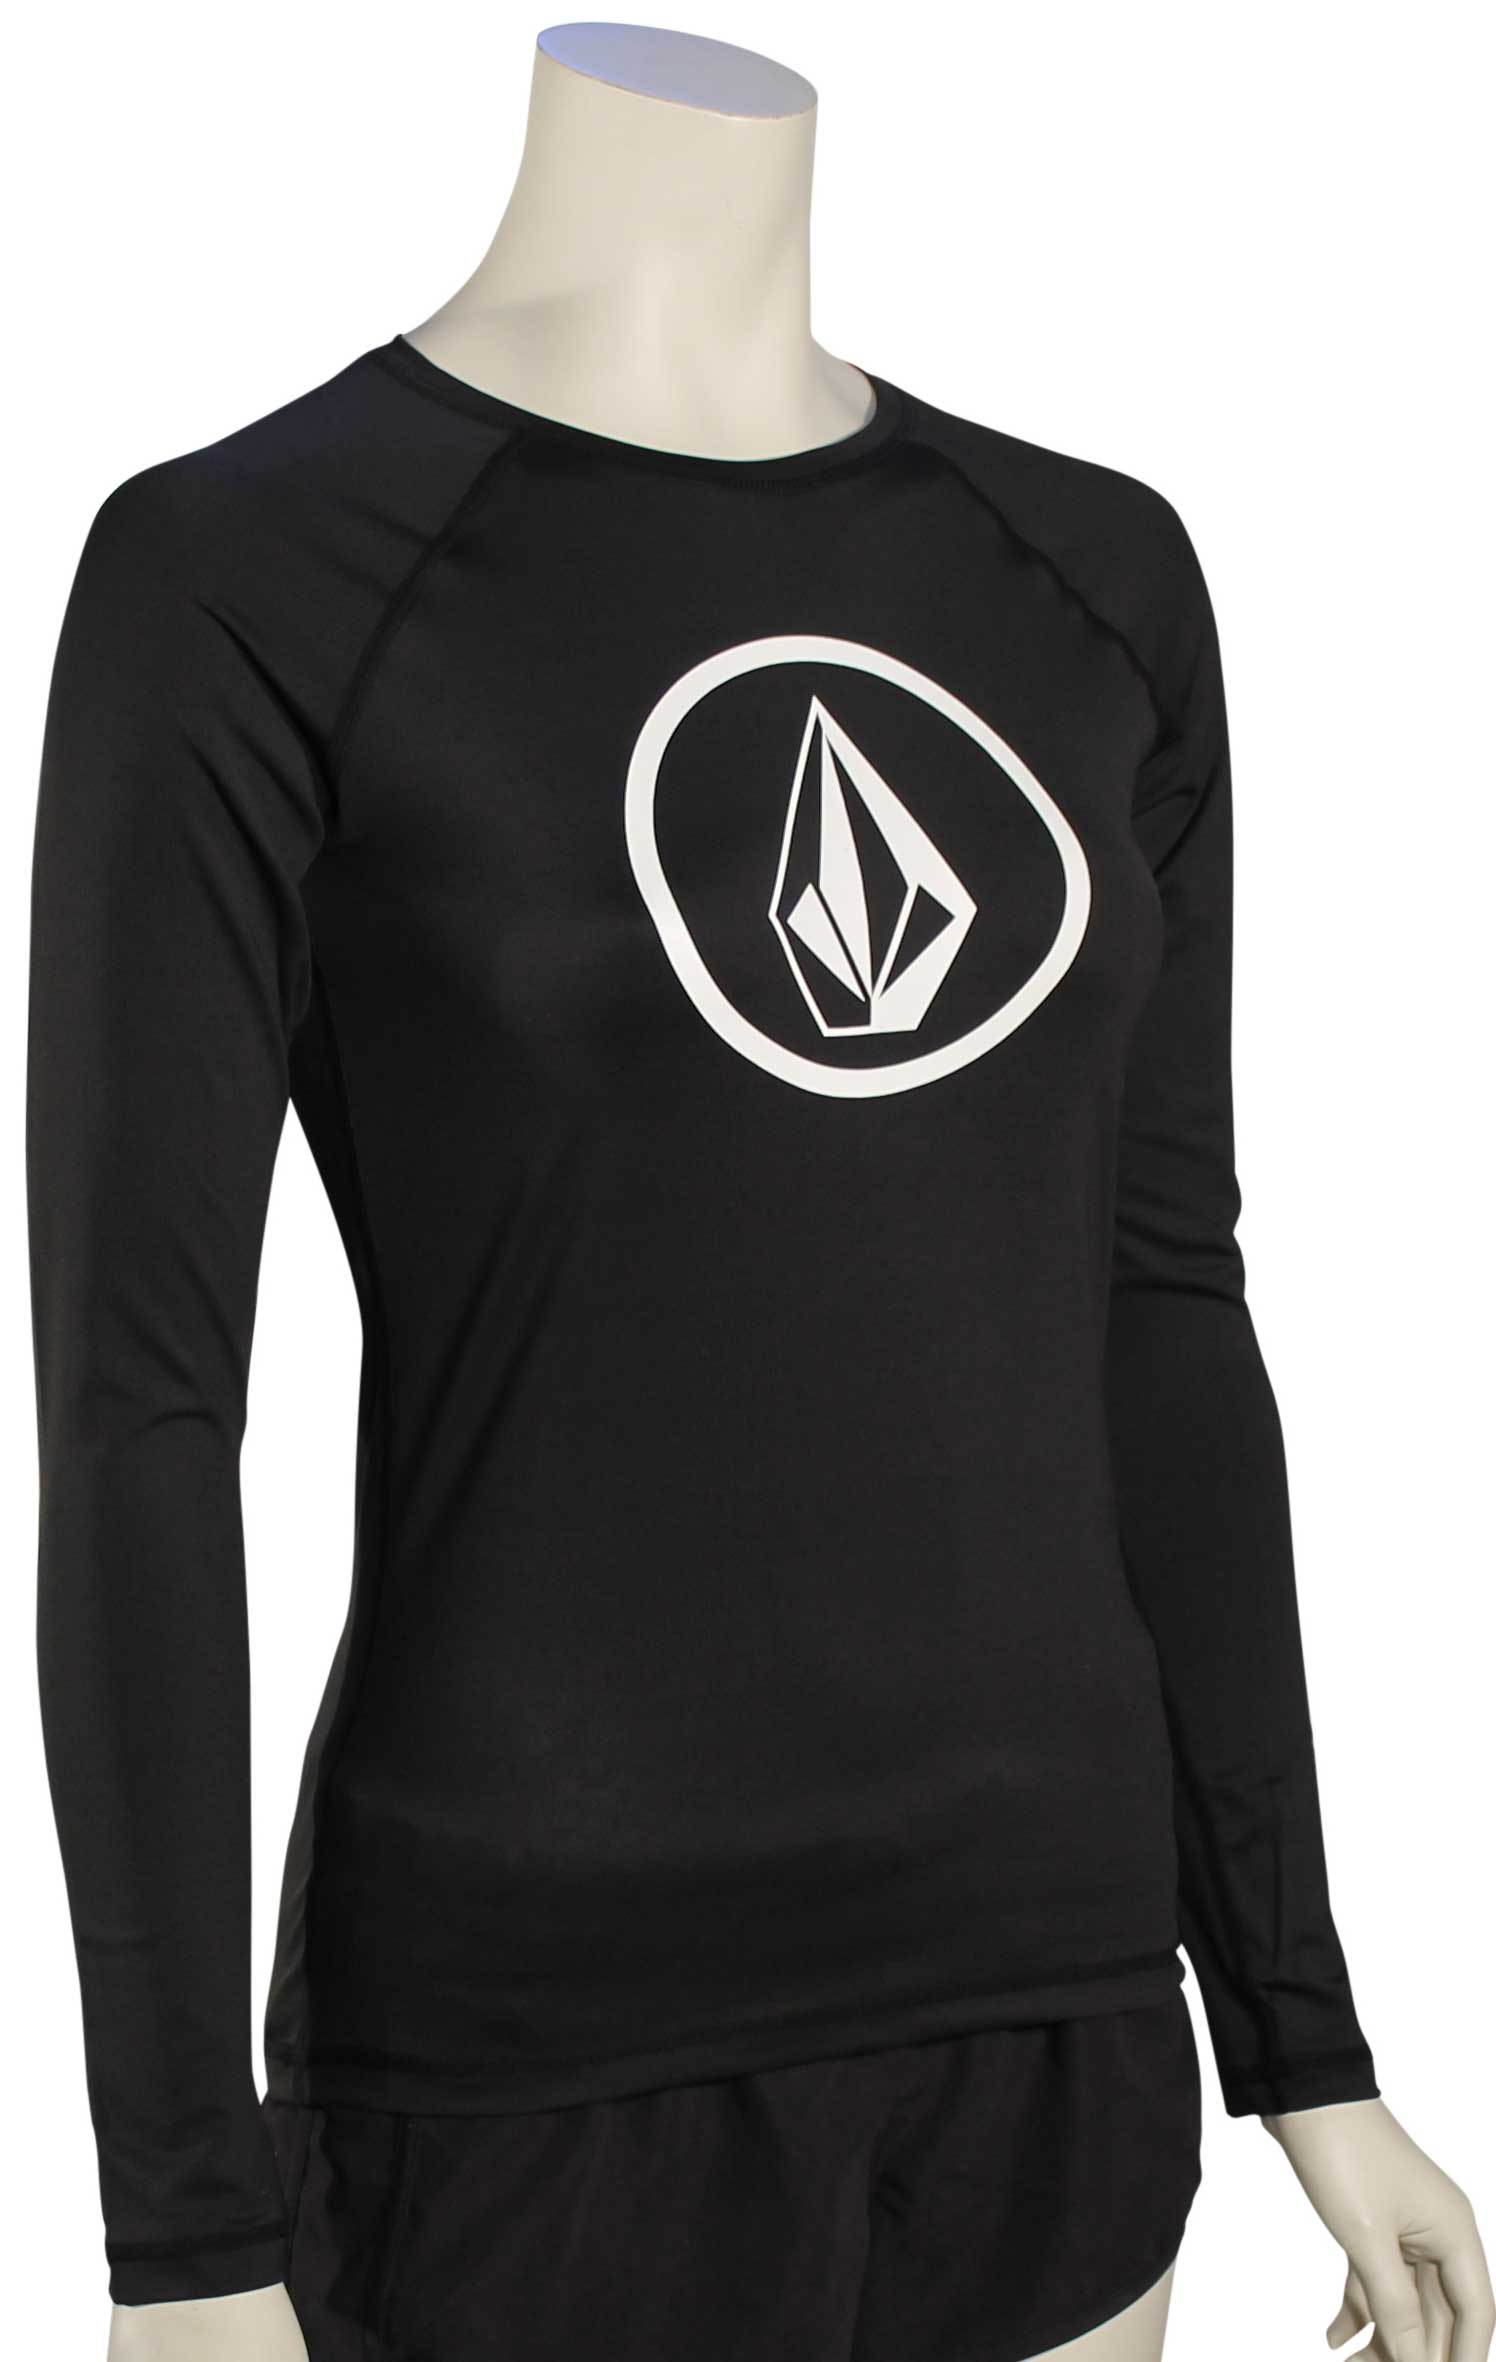 Large selection of unique BJJ rash guards at a discounted rate. Sales on NOW.